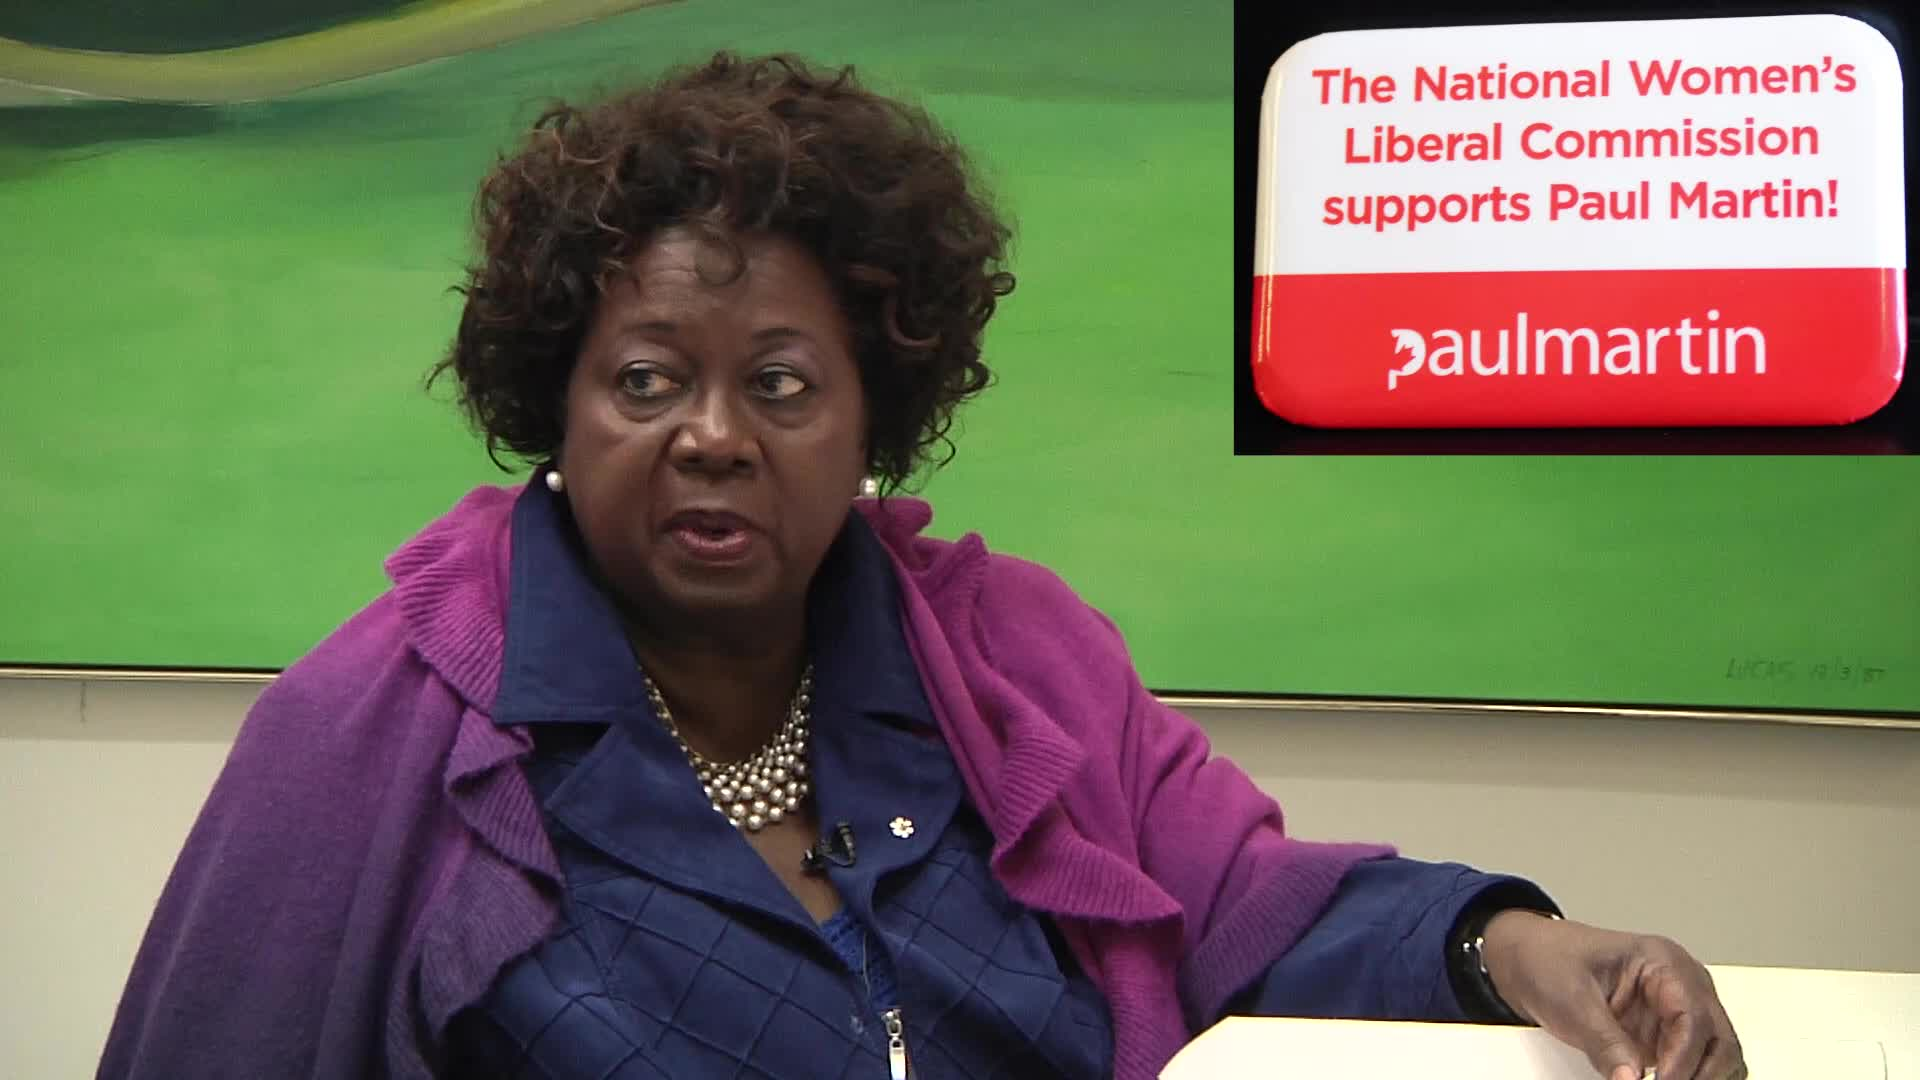 Jean Augustine interview: National Women's Liberal Commission supports Paul Martin button